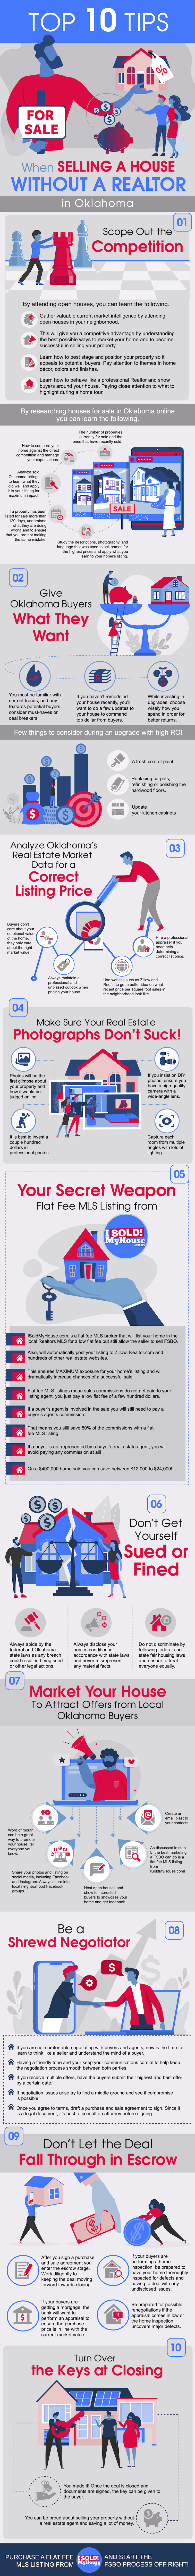 infographic of the 10 steps to sell a house in oklahoma without an agent